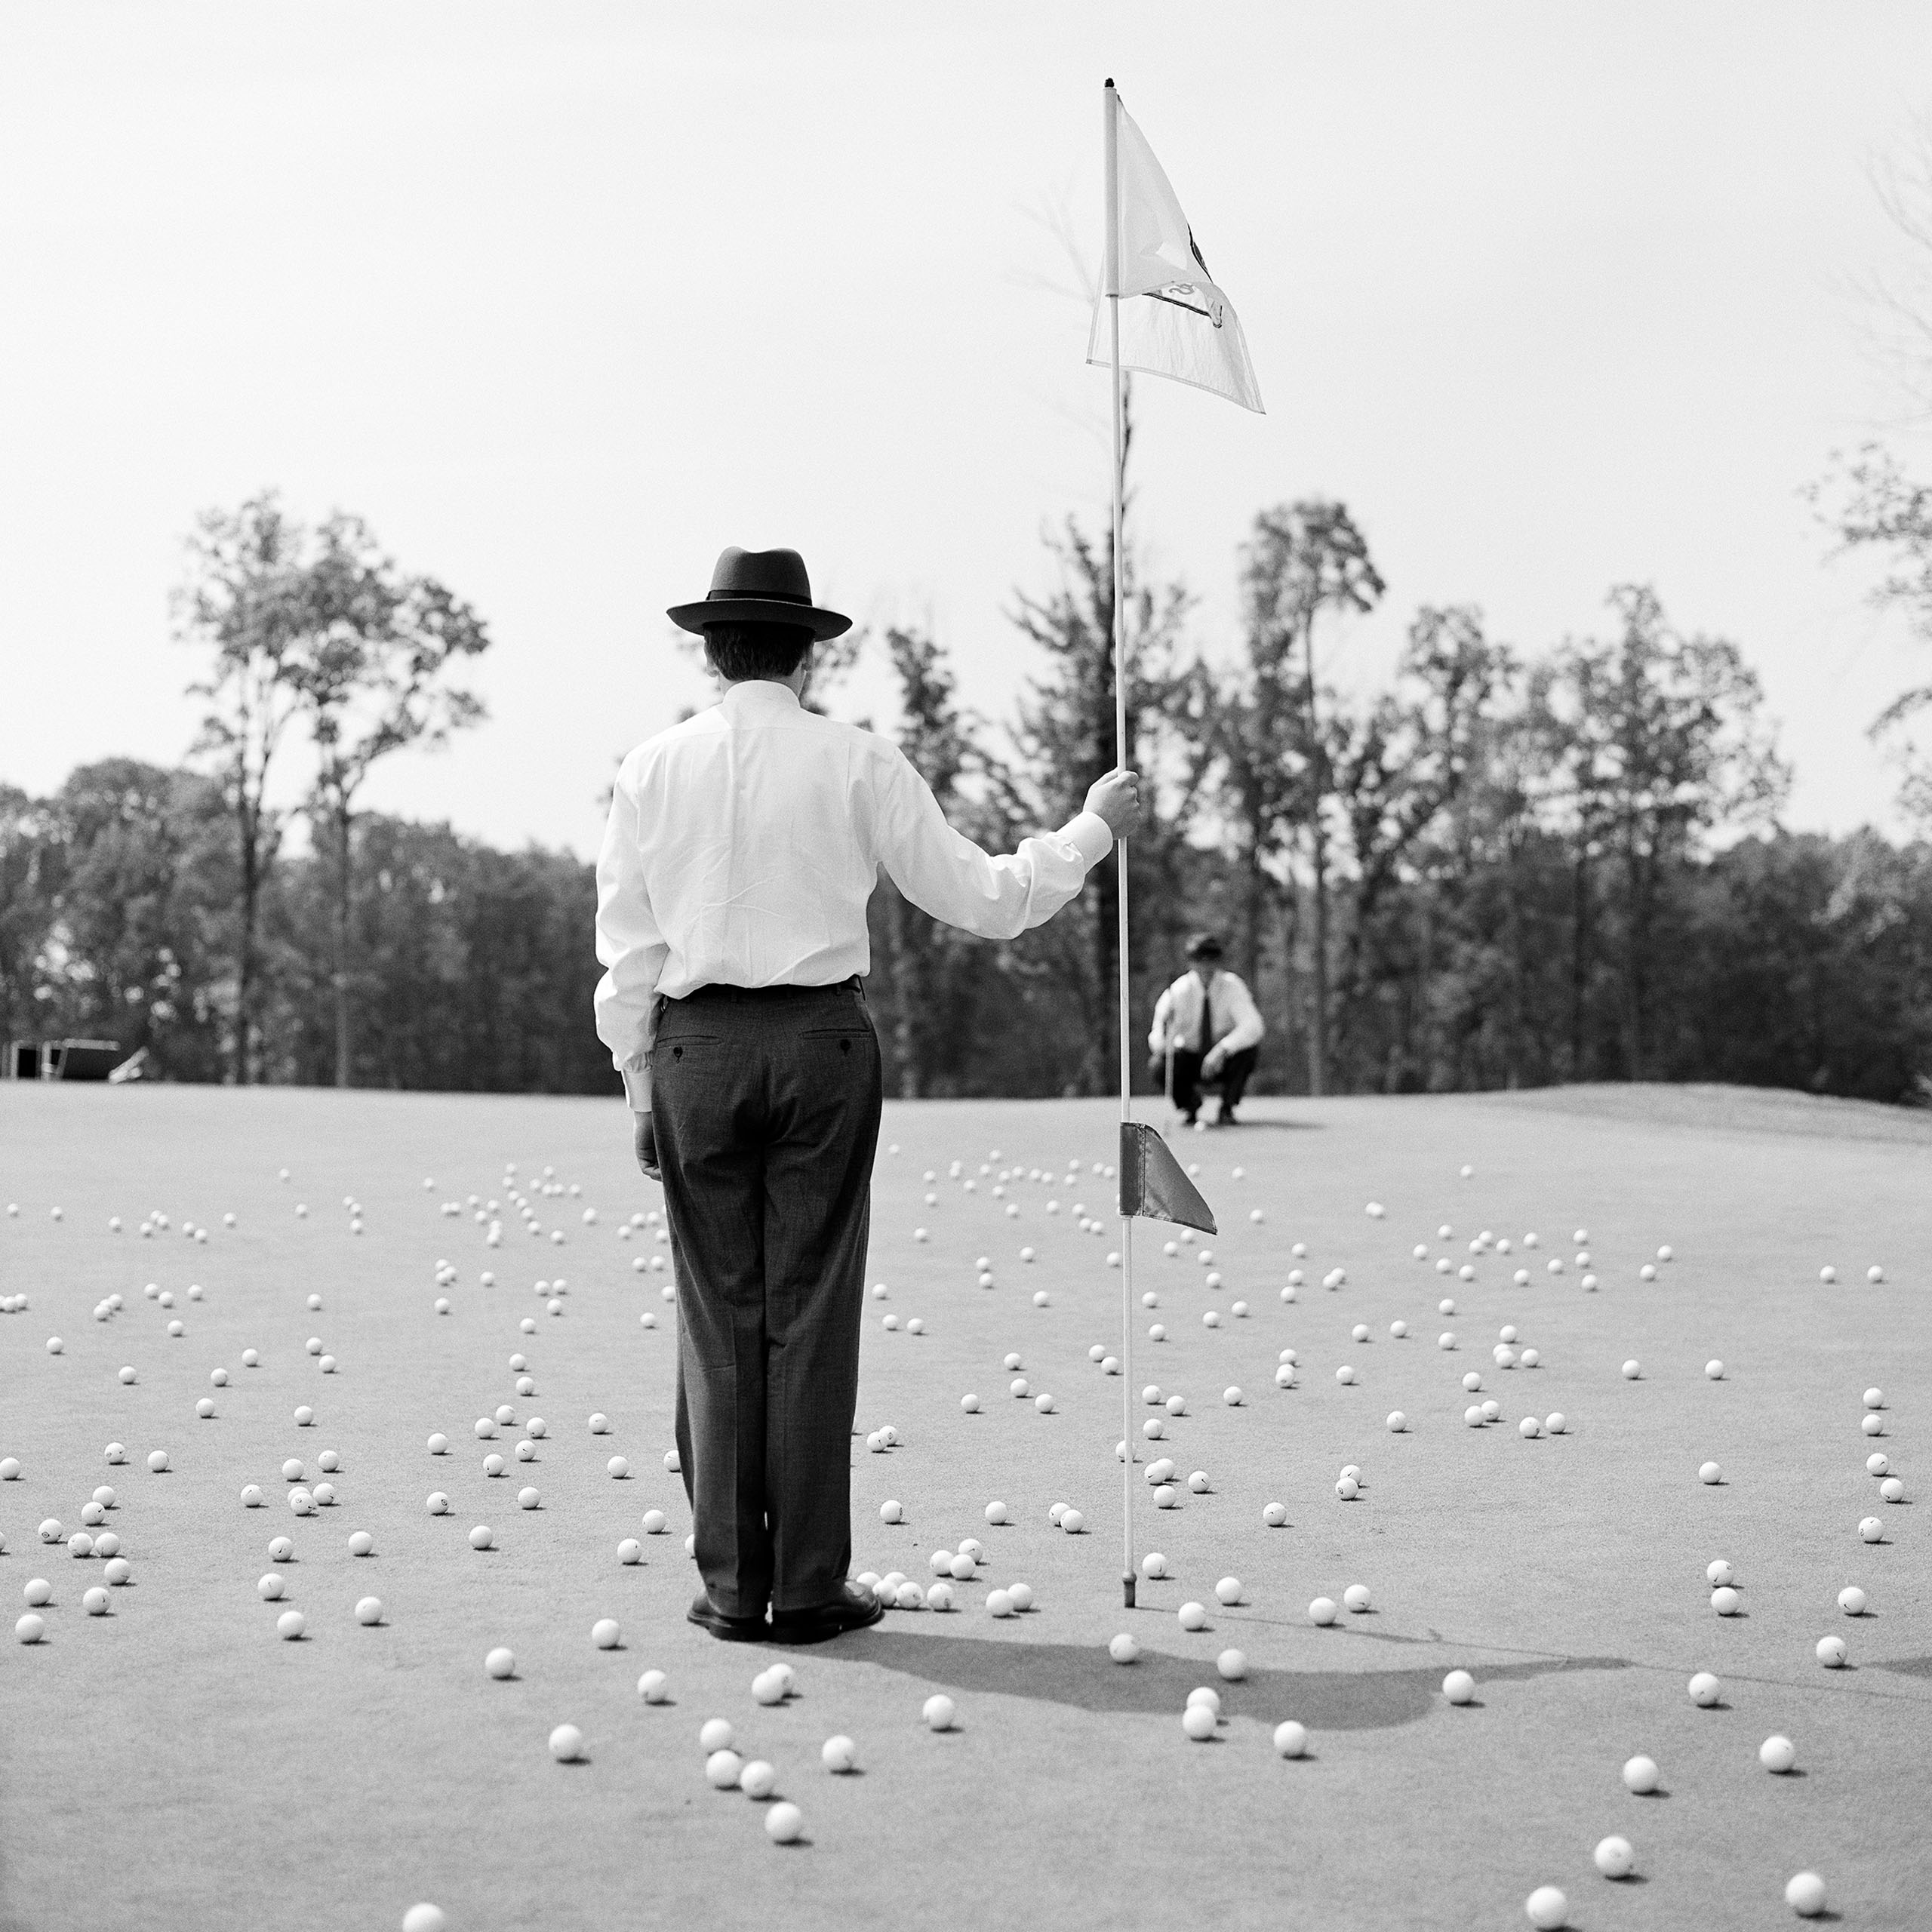 Putting green with golf balls, Nyack, New York, 2002